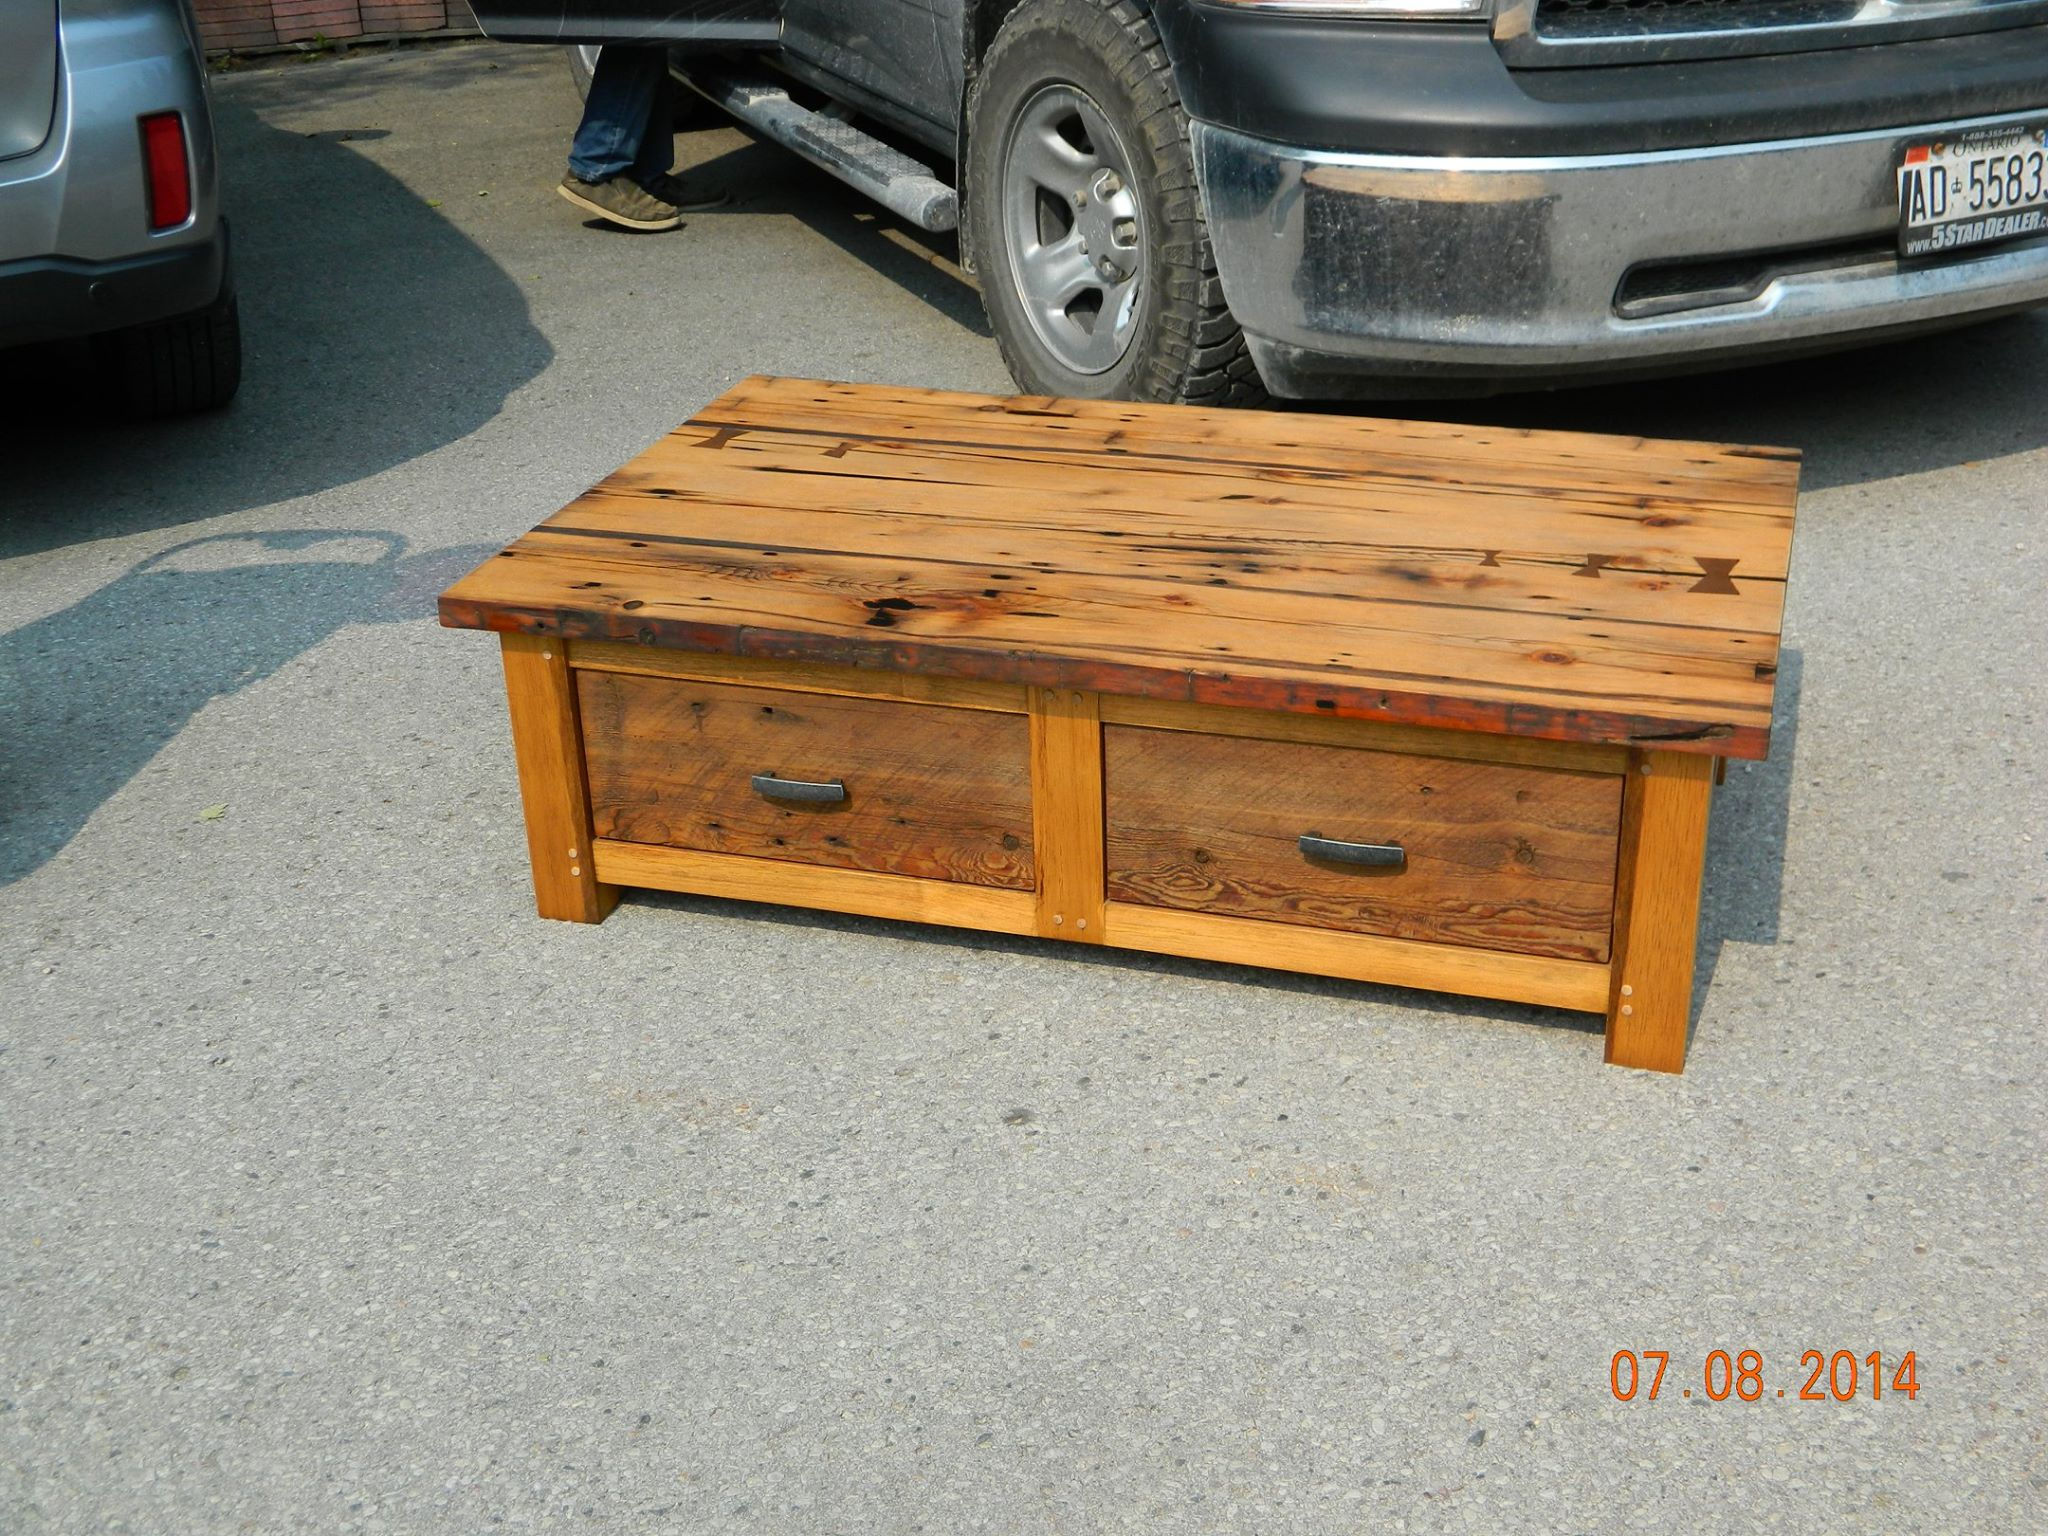 From Rob Monk: Coffee Table crafted from salvaged barn wood using traditional joinery and finished in danish oil. This piece was originally a gift for my mother in-law but sold at trade show.